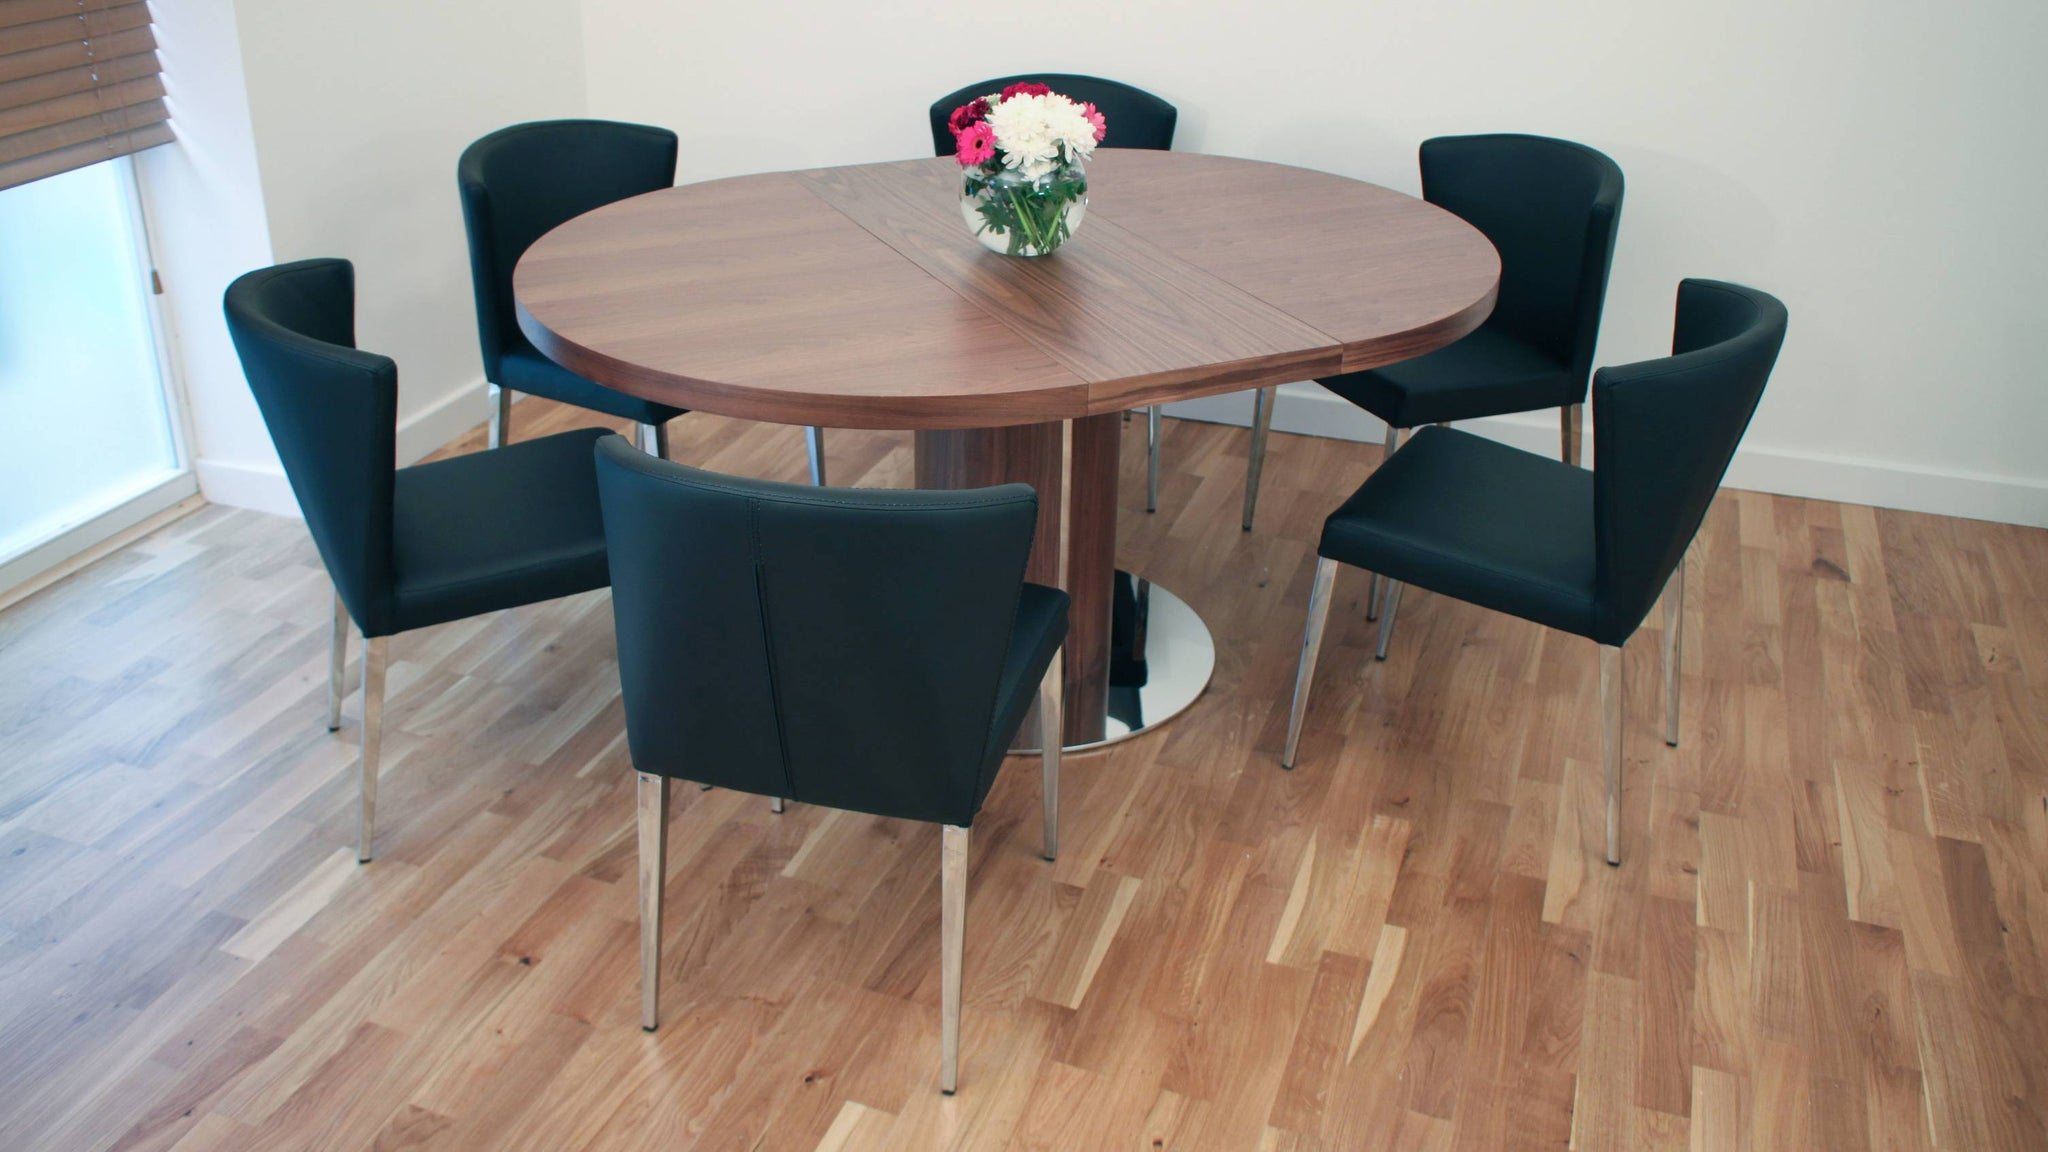 Large Round Walnut Extending Dining Table and Black Chairs